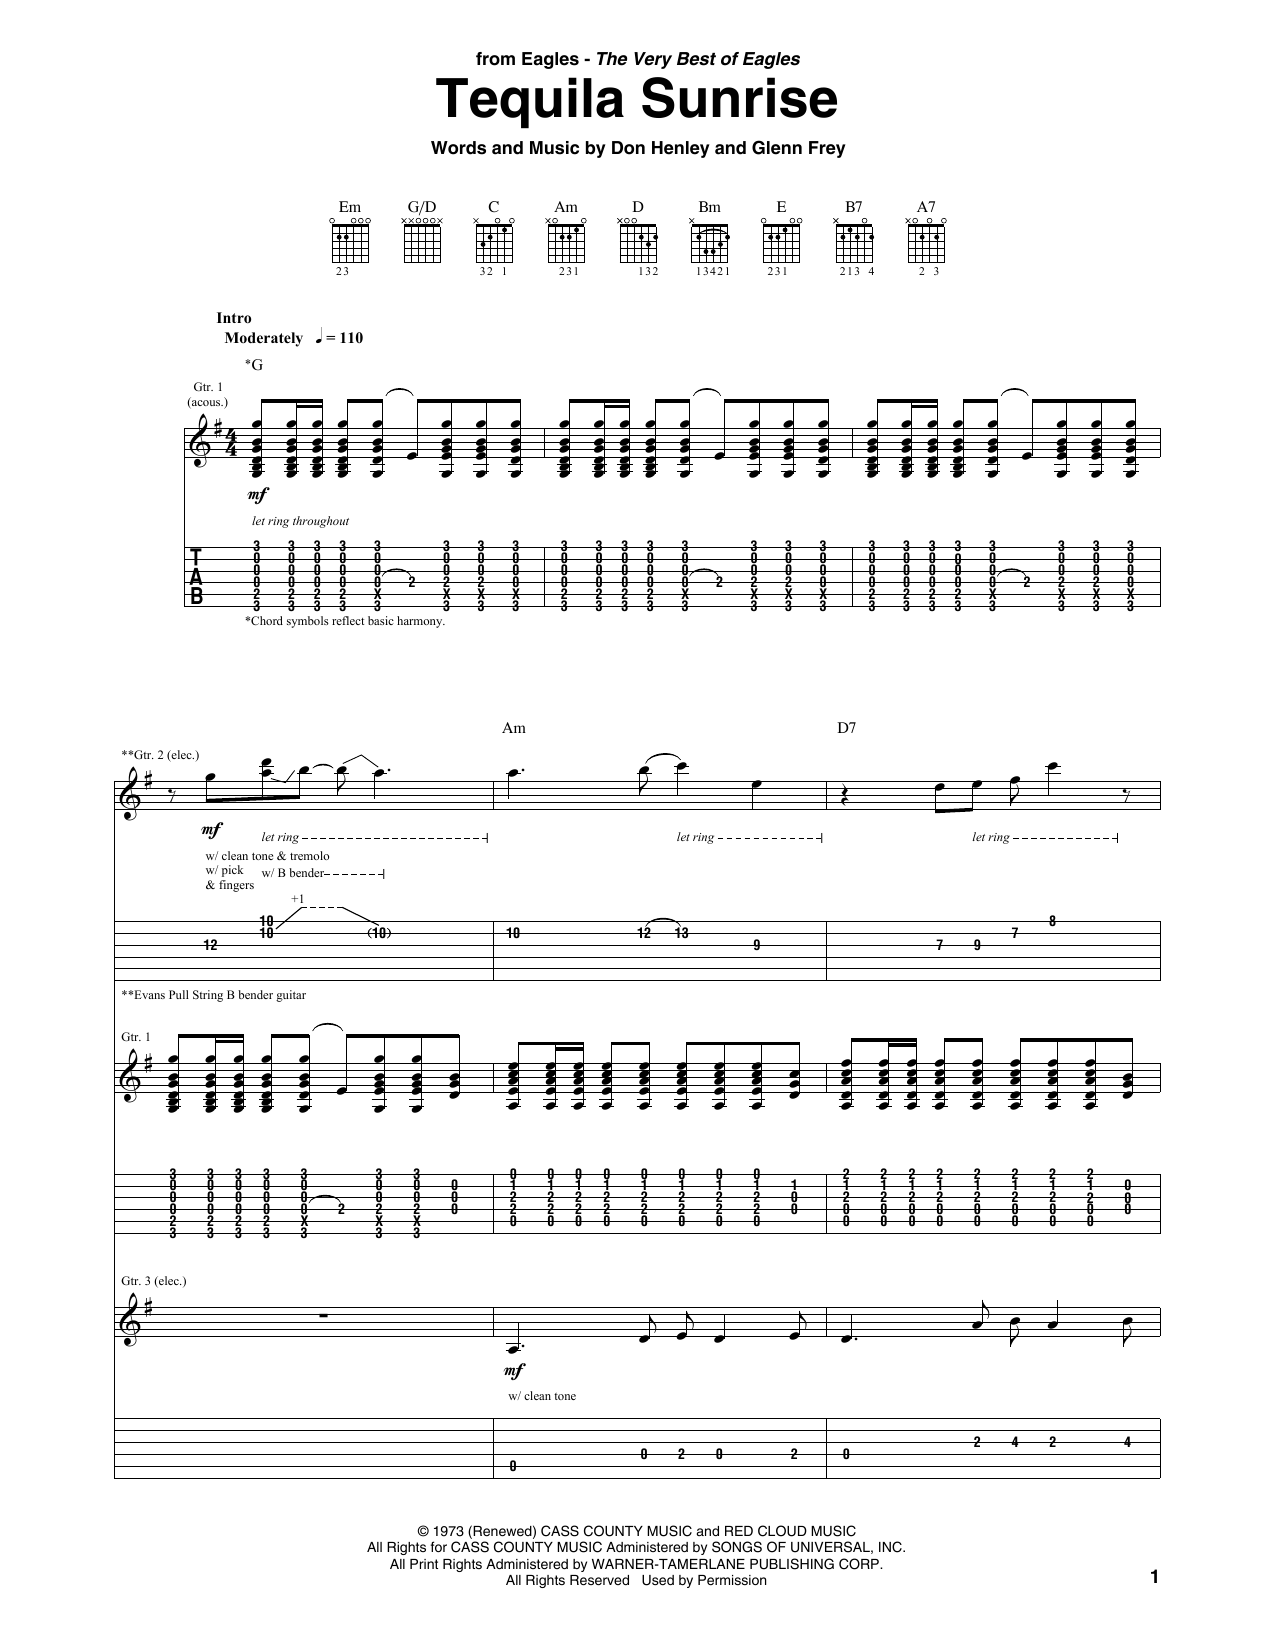 Guitar chords for tequila sunrise